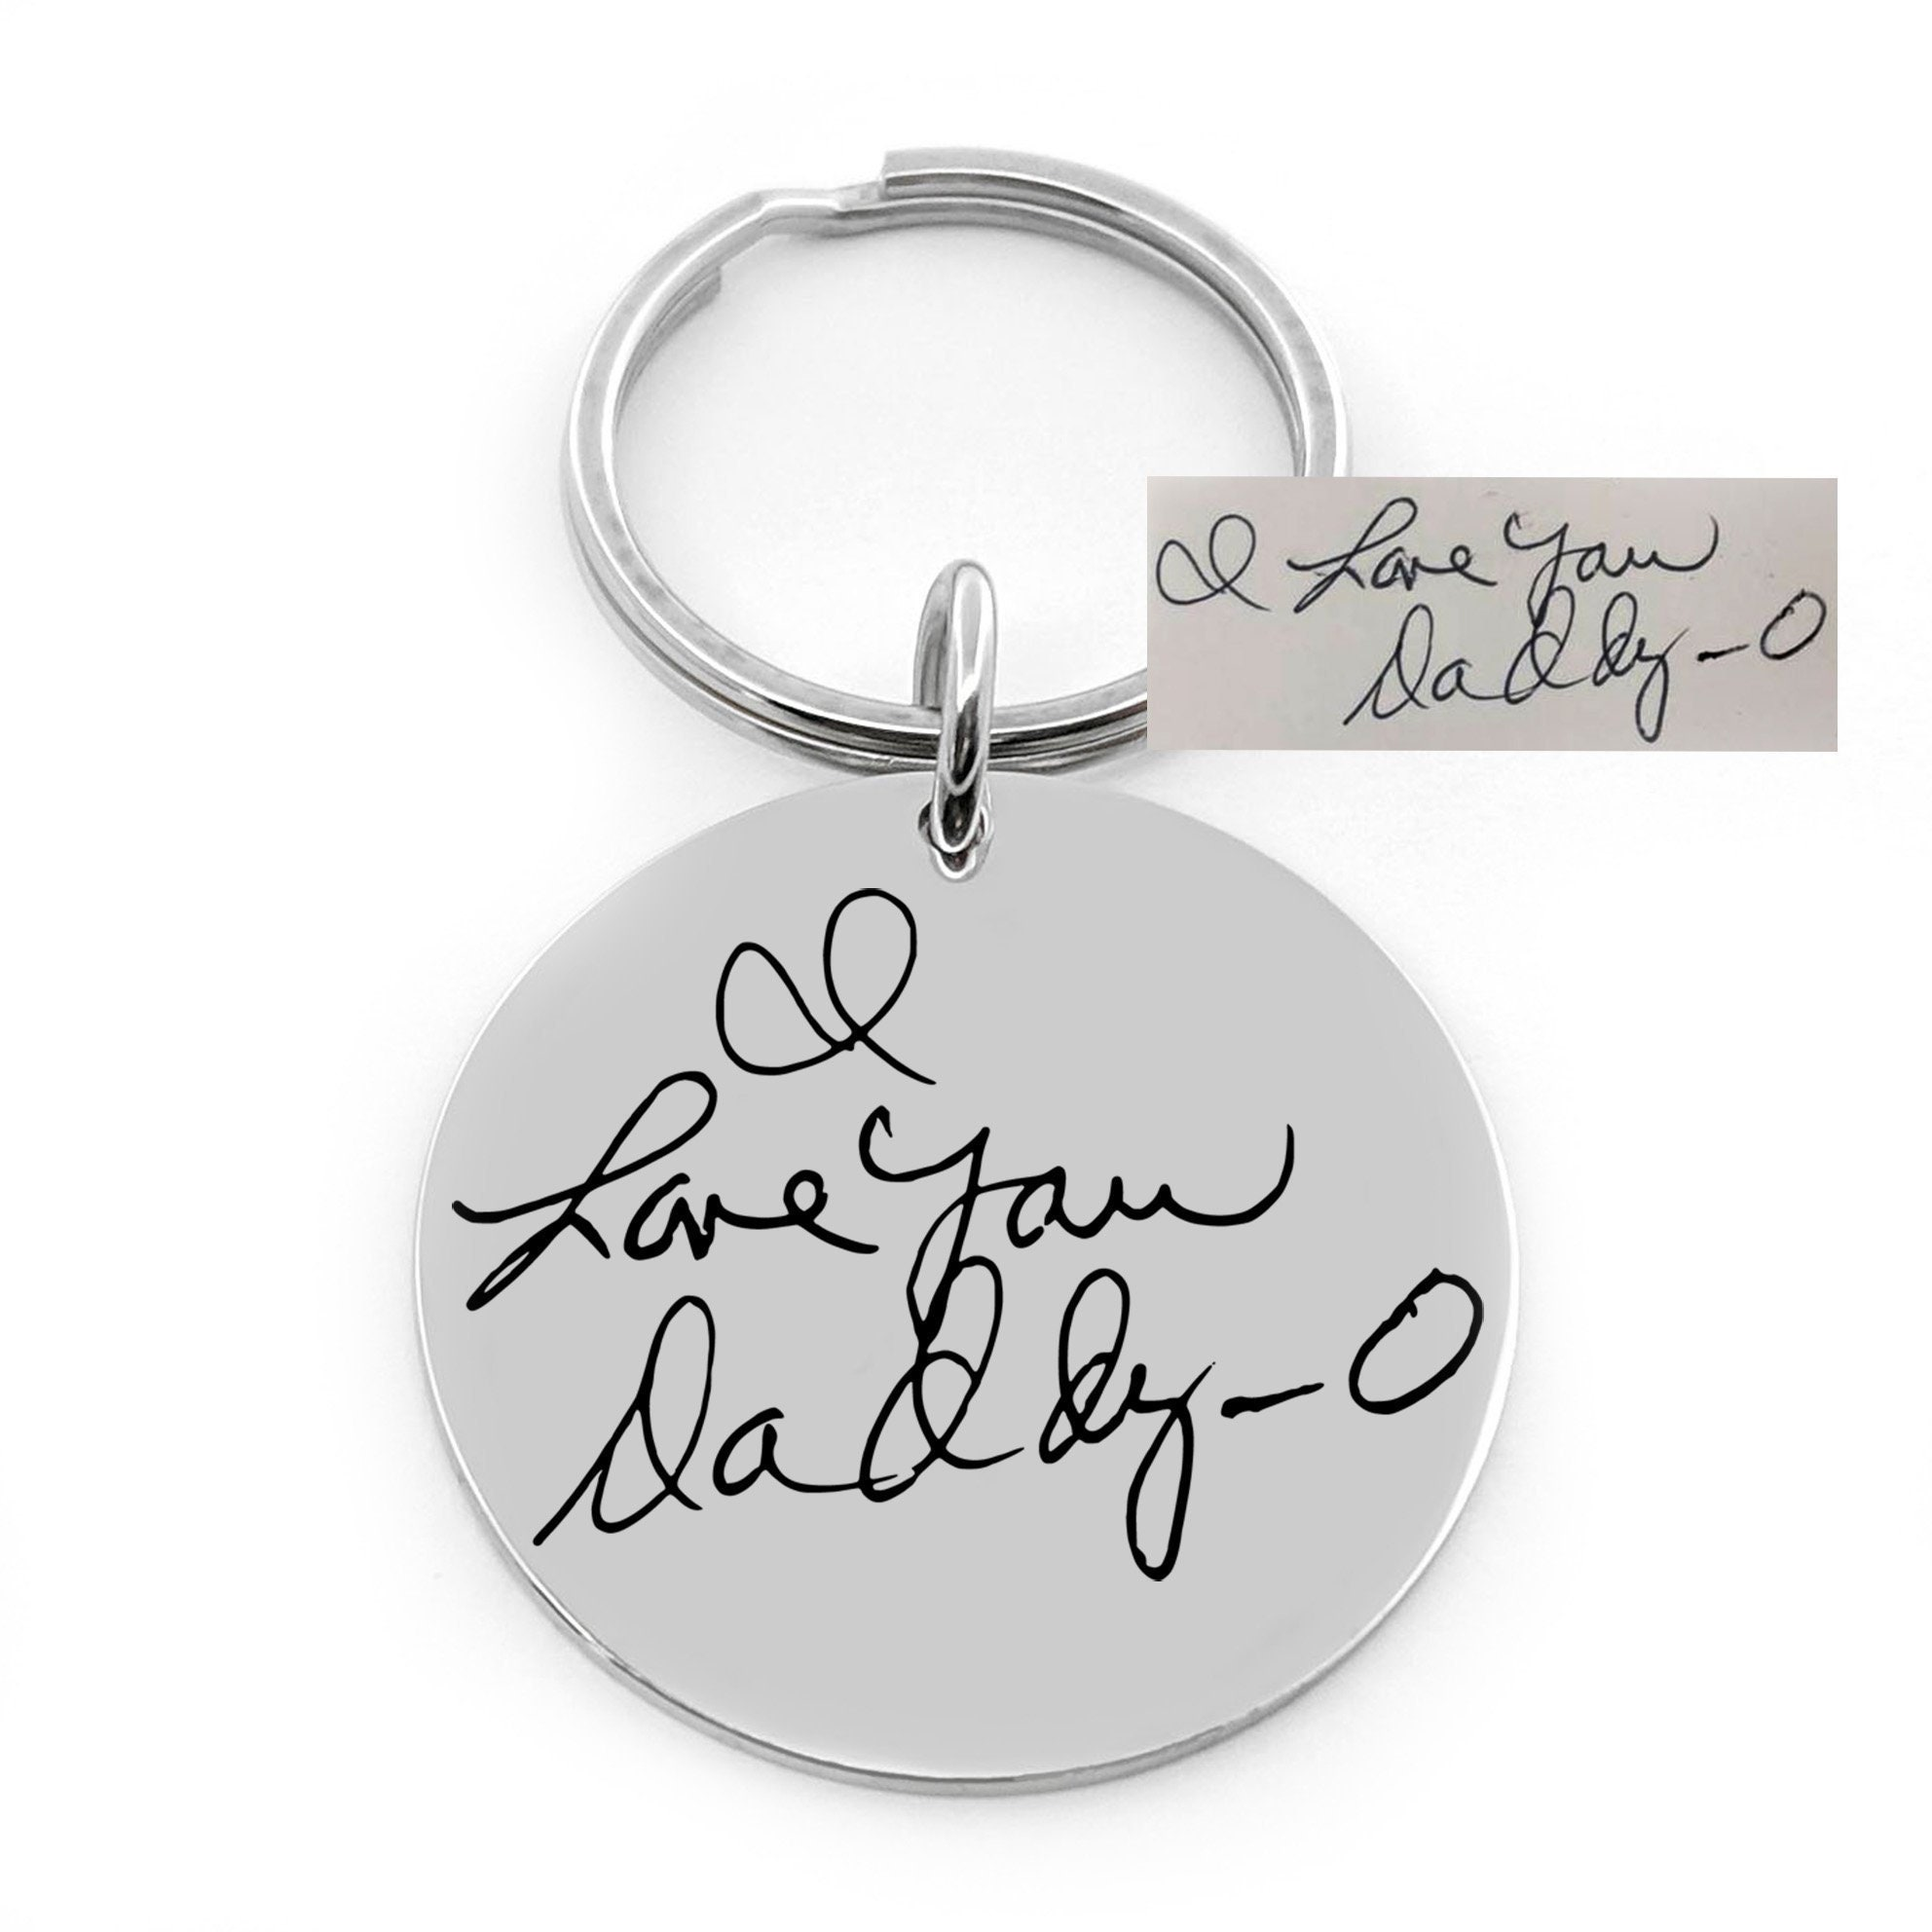 LARGE Actual HANDWRITING signature keychain in SOLID 925 sterling silver